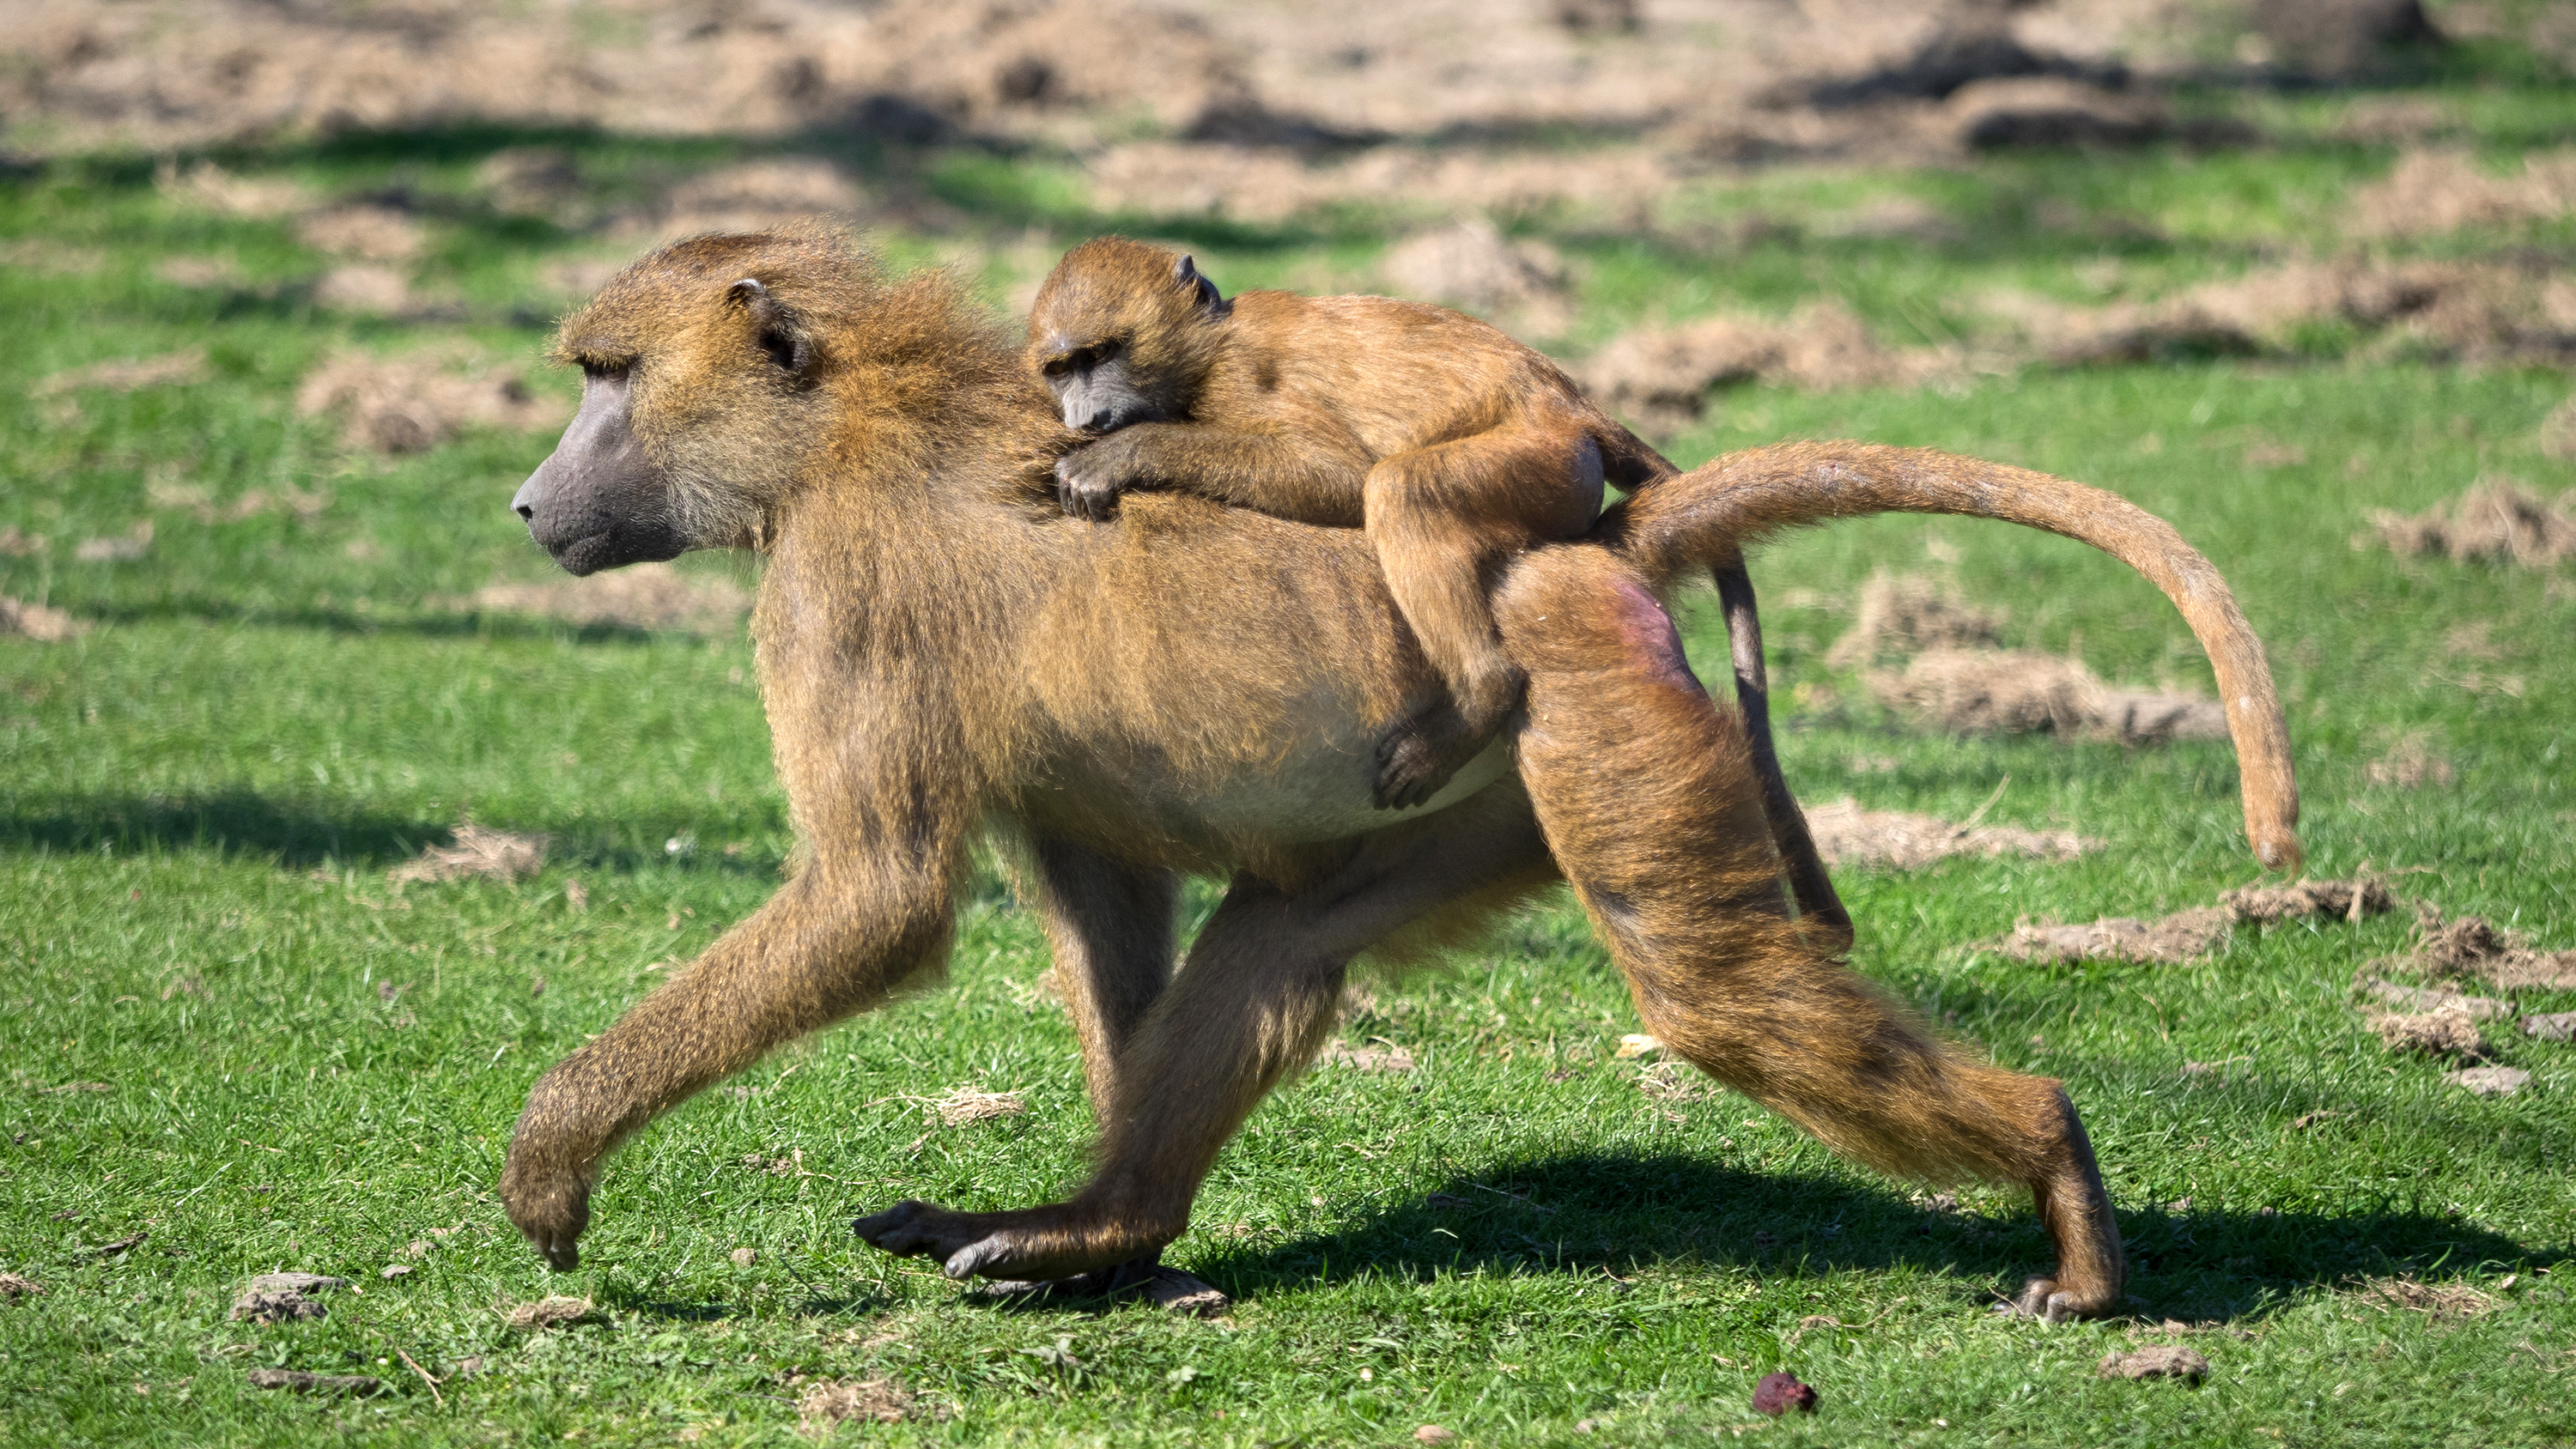 A baboon carrying a cub on its back